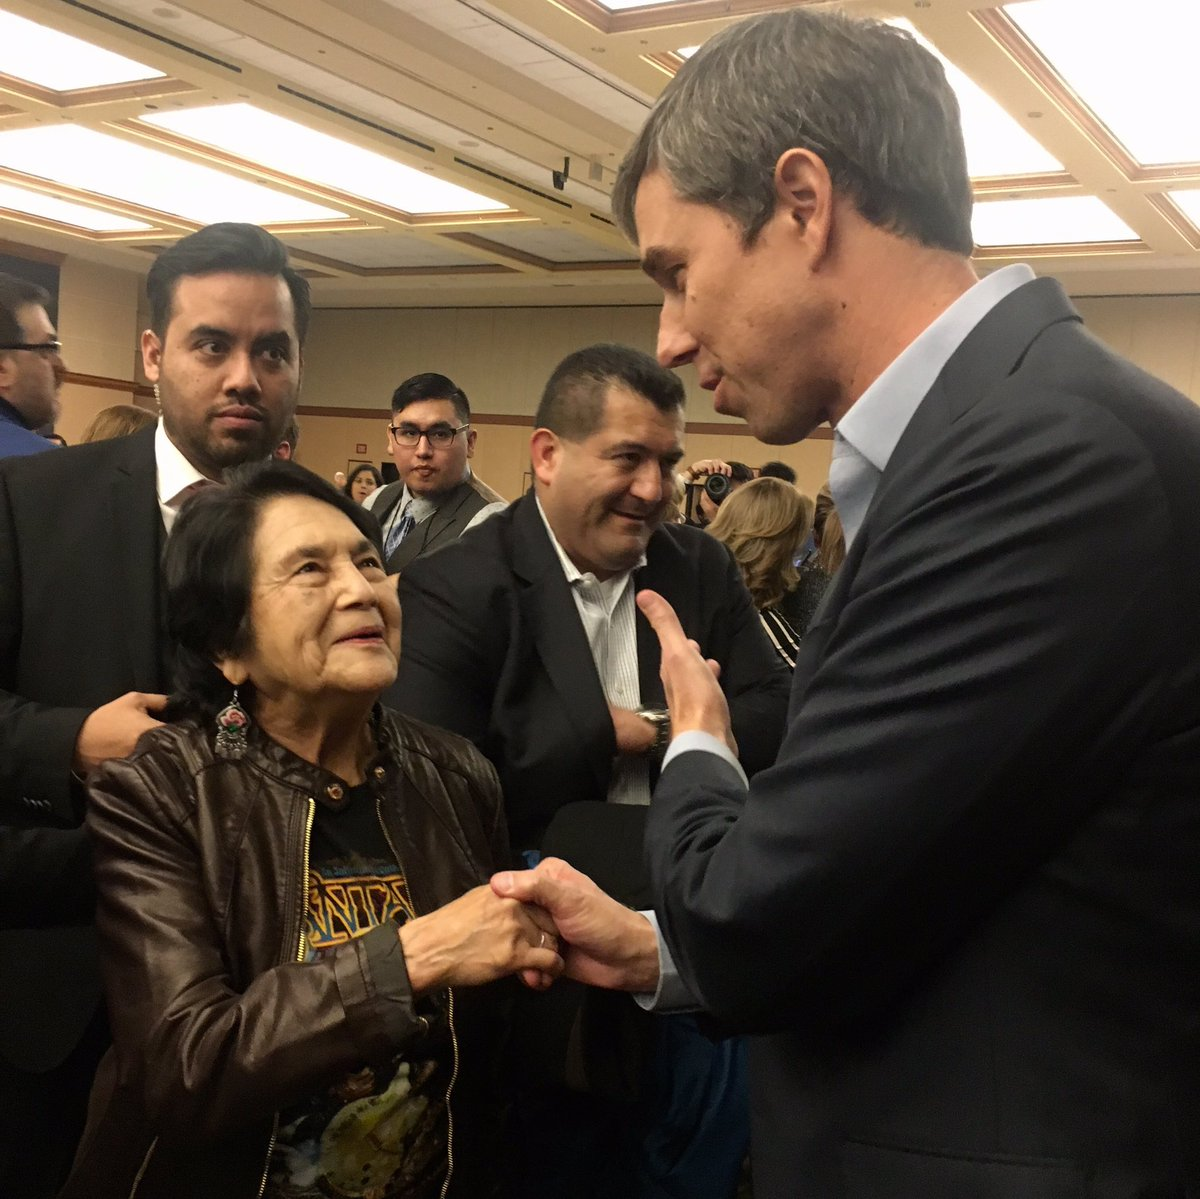 Huge honor to be with all time American hero Dolores Huerta.